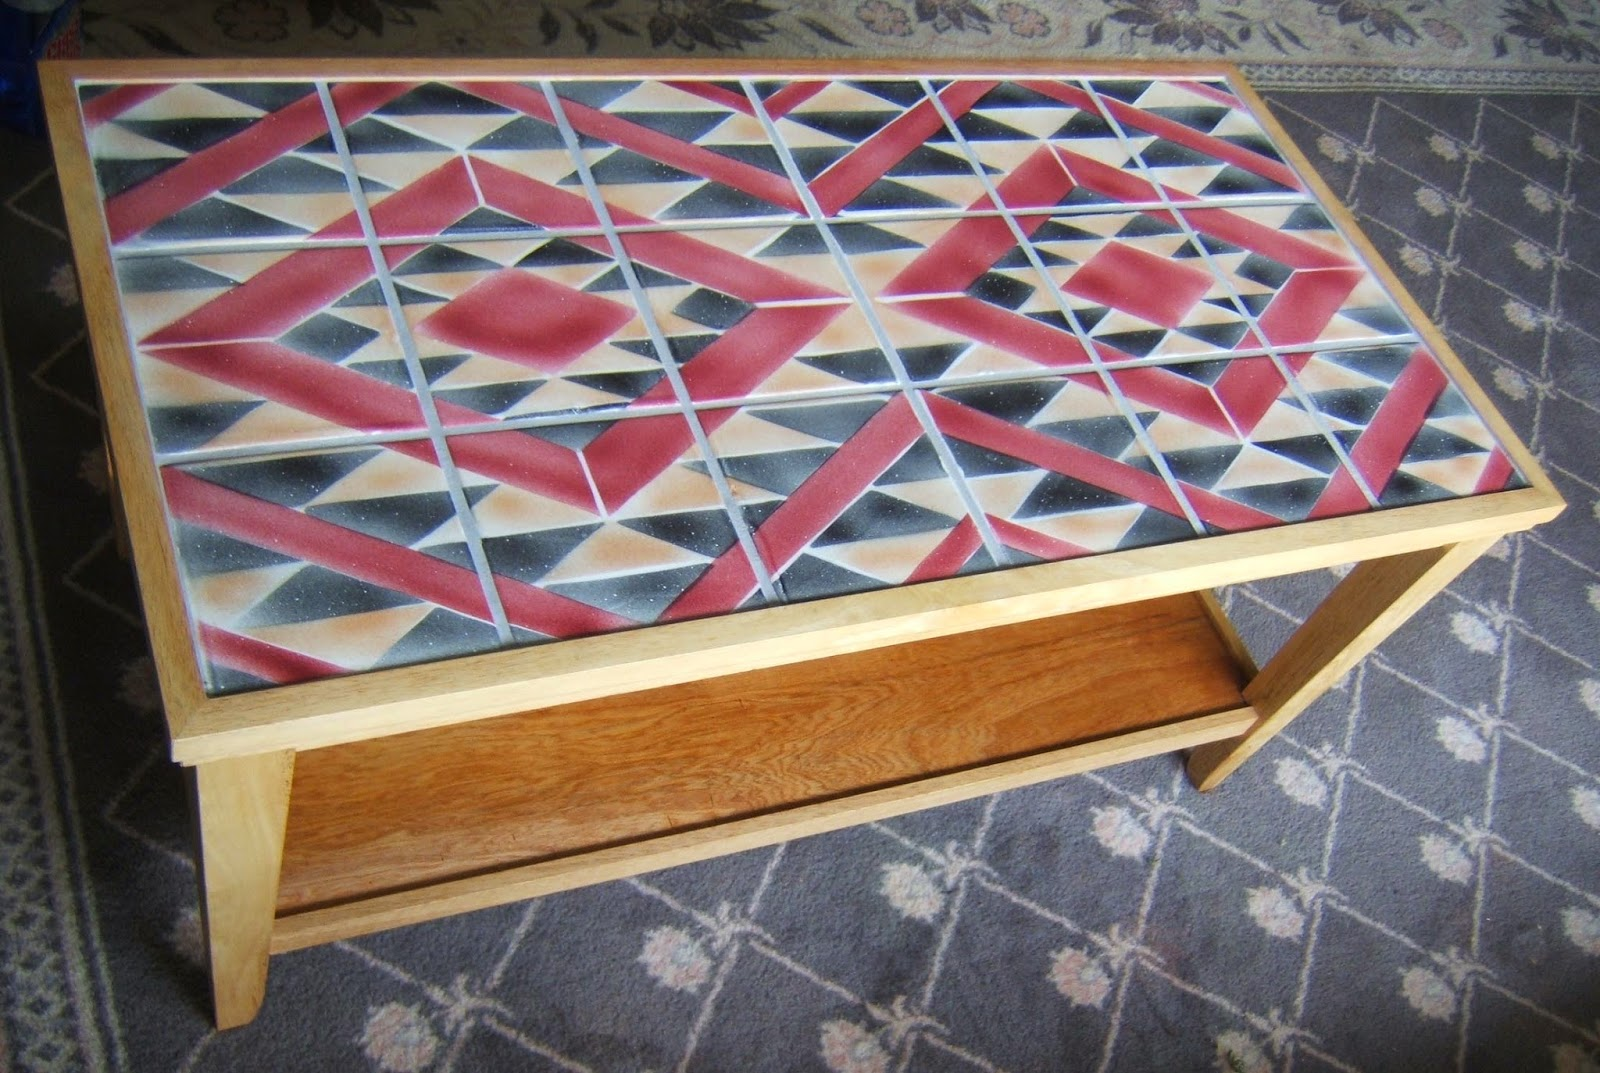 Navajo Rug Pattern Ceramic Tile Coffee Table | Architectural ...